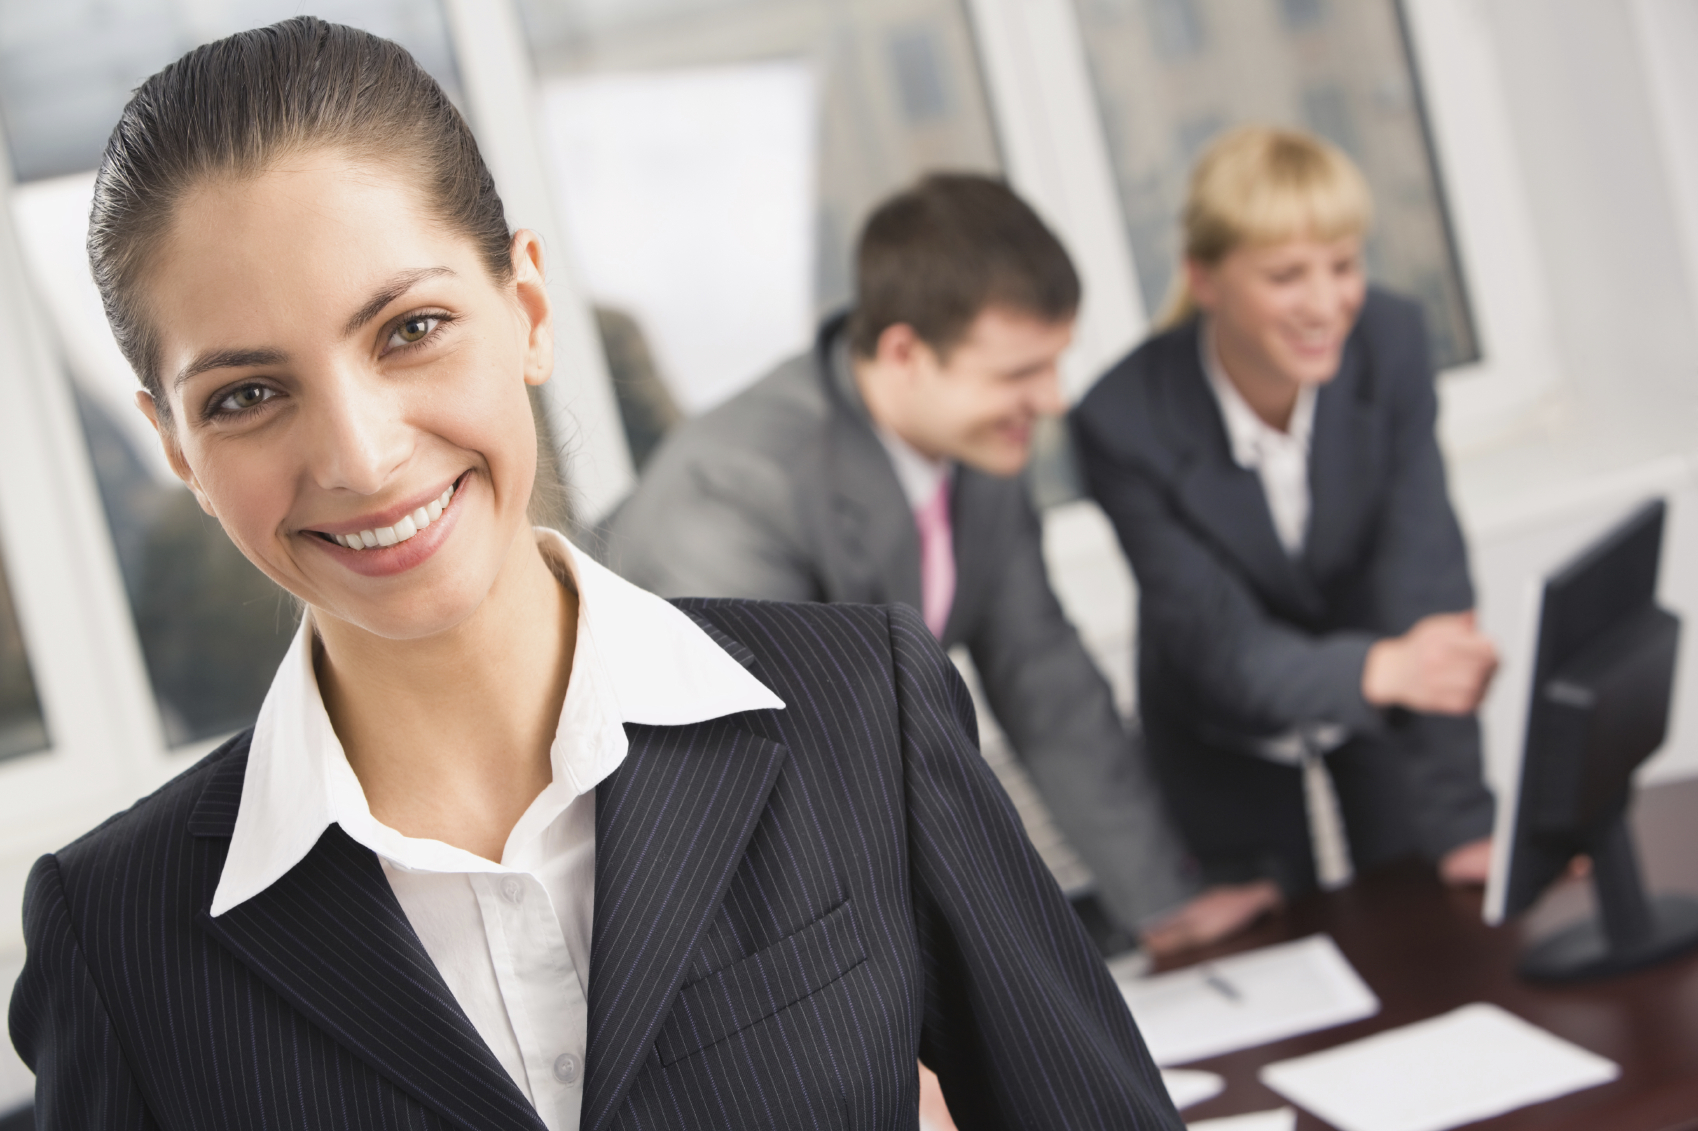 professionally dressed individuals in an office meeting room